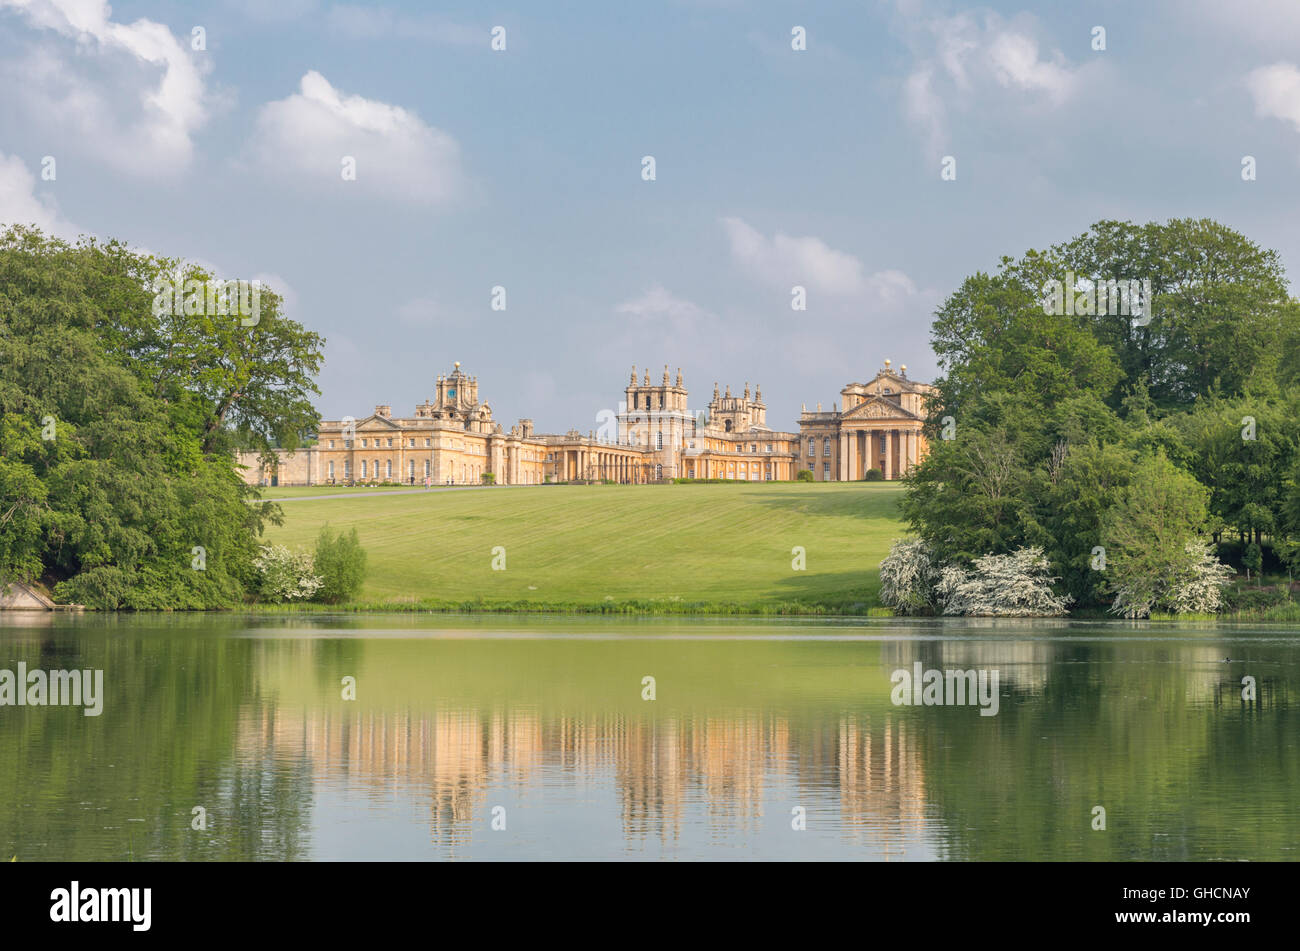 Blenheim Palace and it's landscaped parkland, Woodstock, Oxfordshire, England, UK - Stock Image